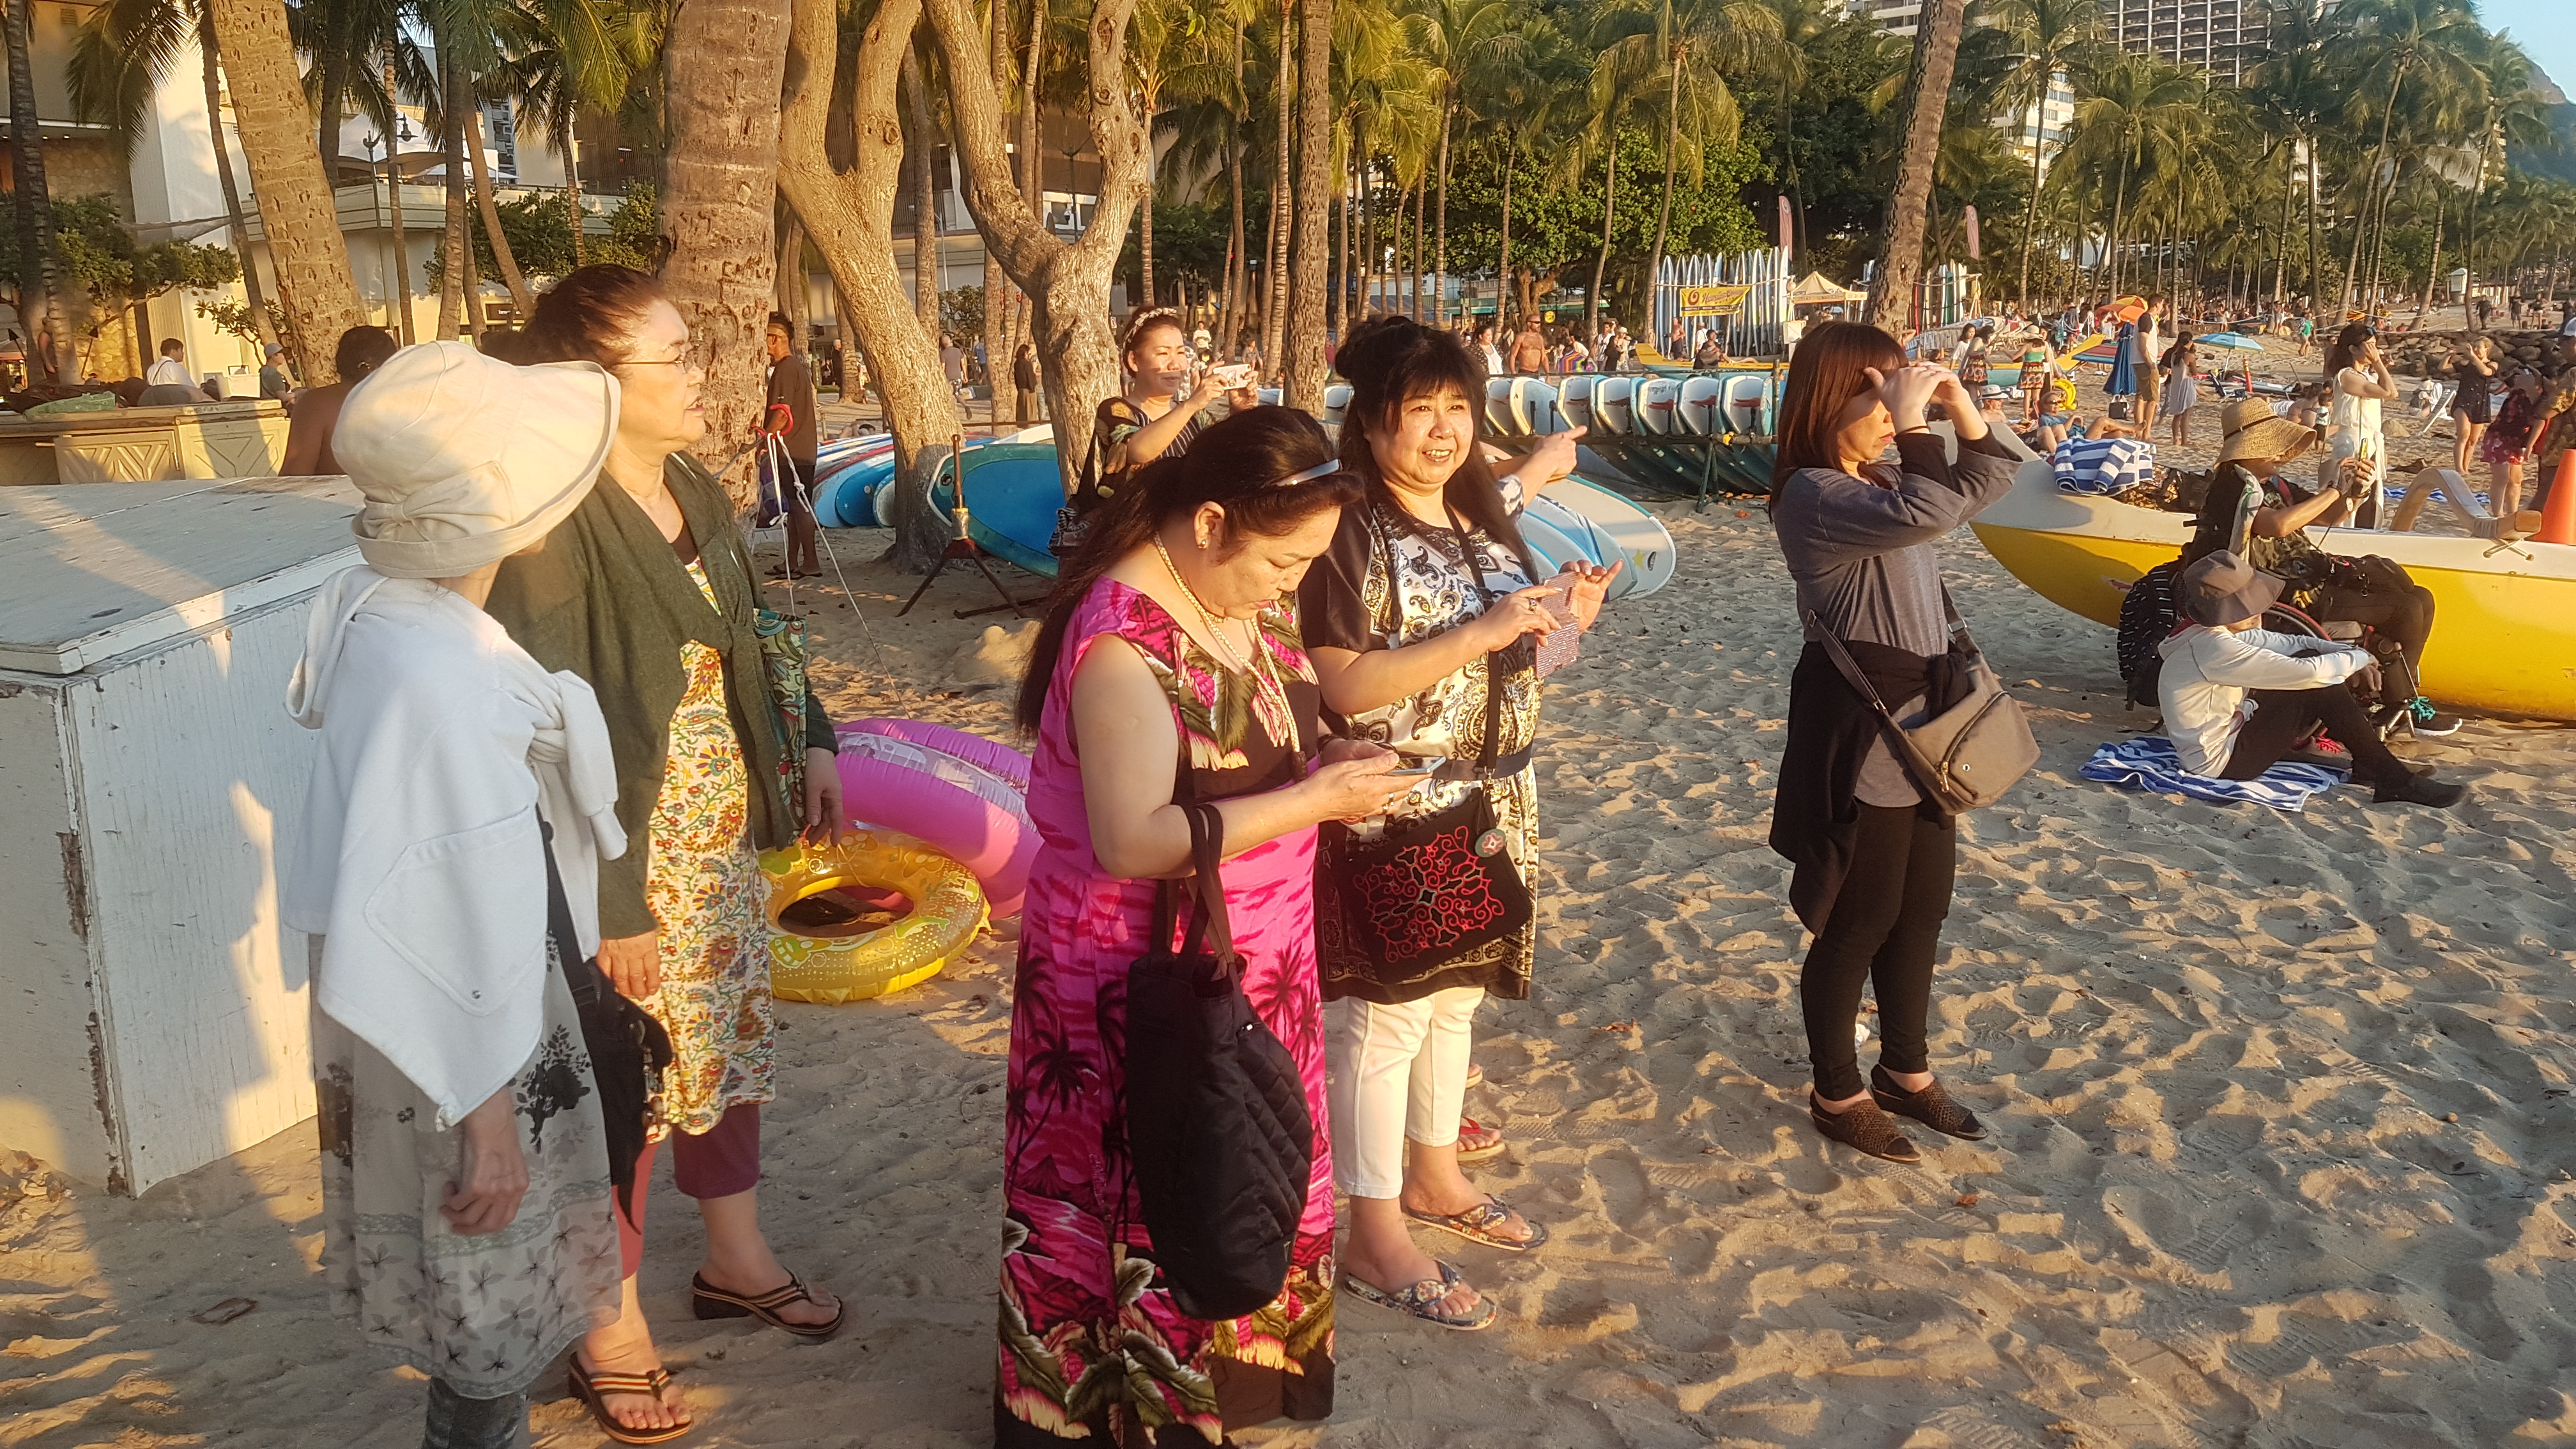 Six women dressed in summer wear on a beach with trees, surfboards and other tourists in the background. Some are gazing at the sea while some are in various stages of taking photographs with their mobile phones. The setting sun lights up their faces.